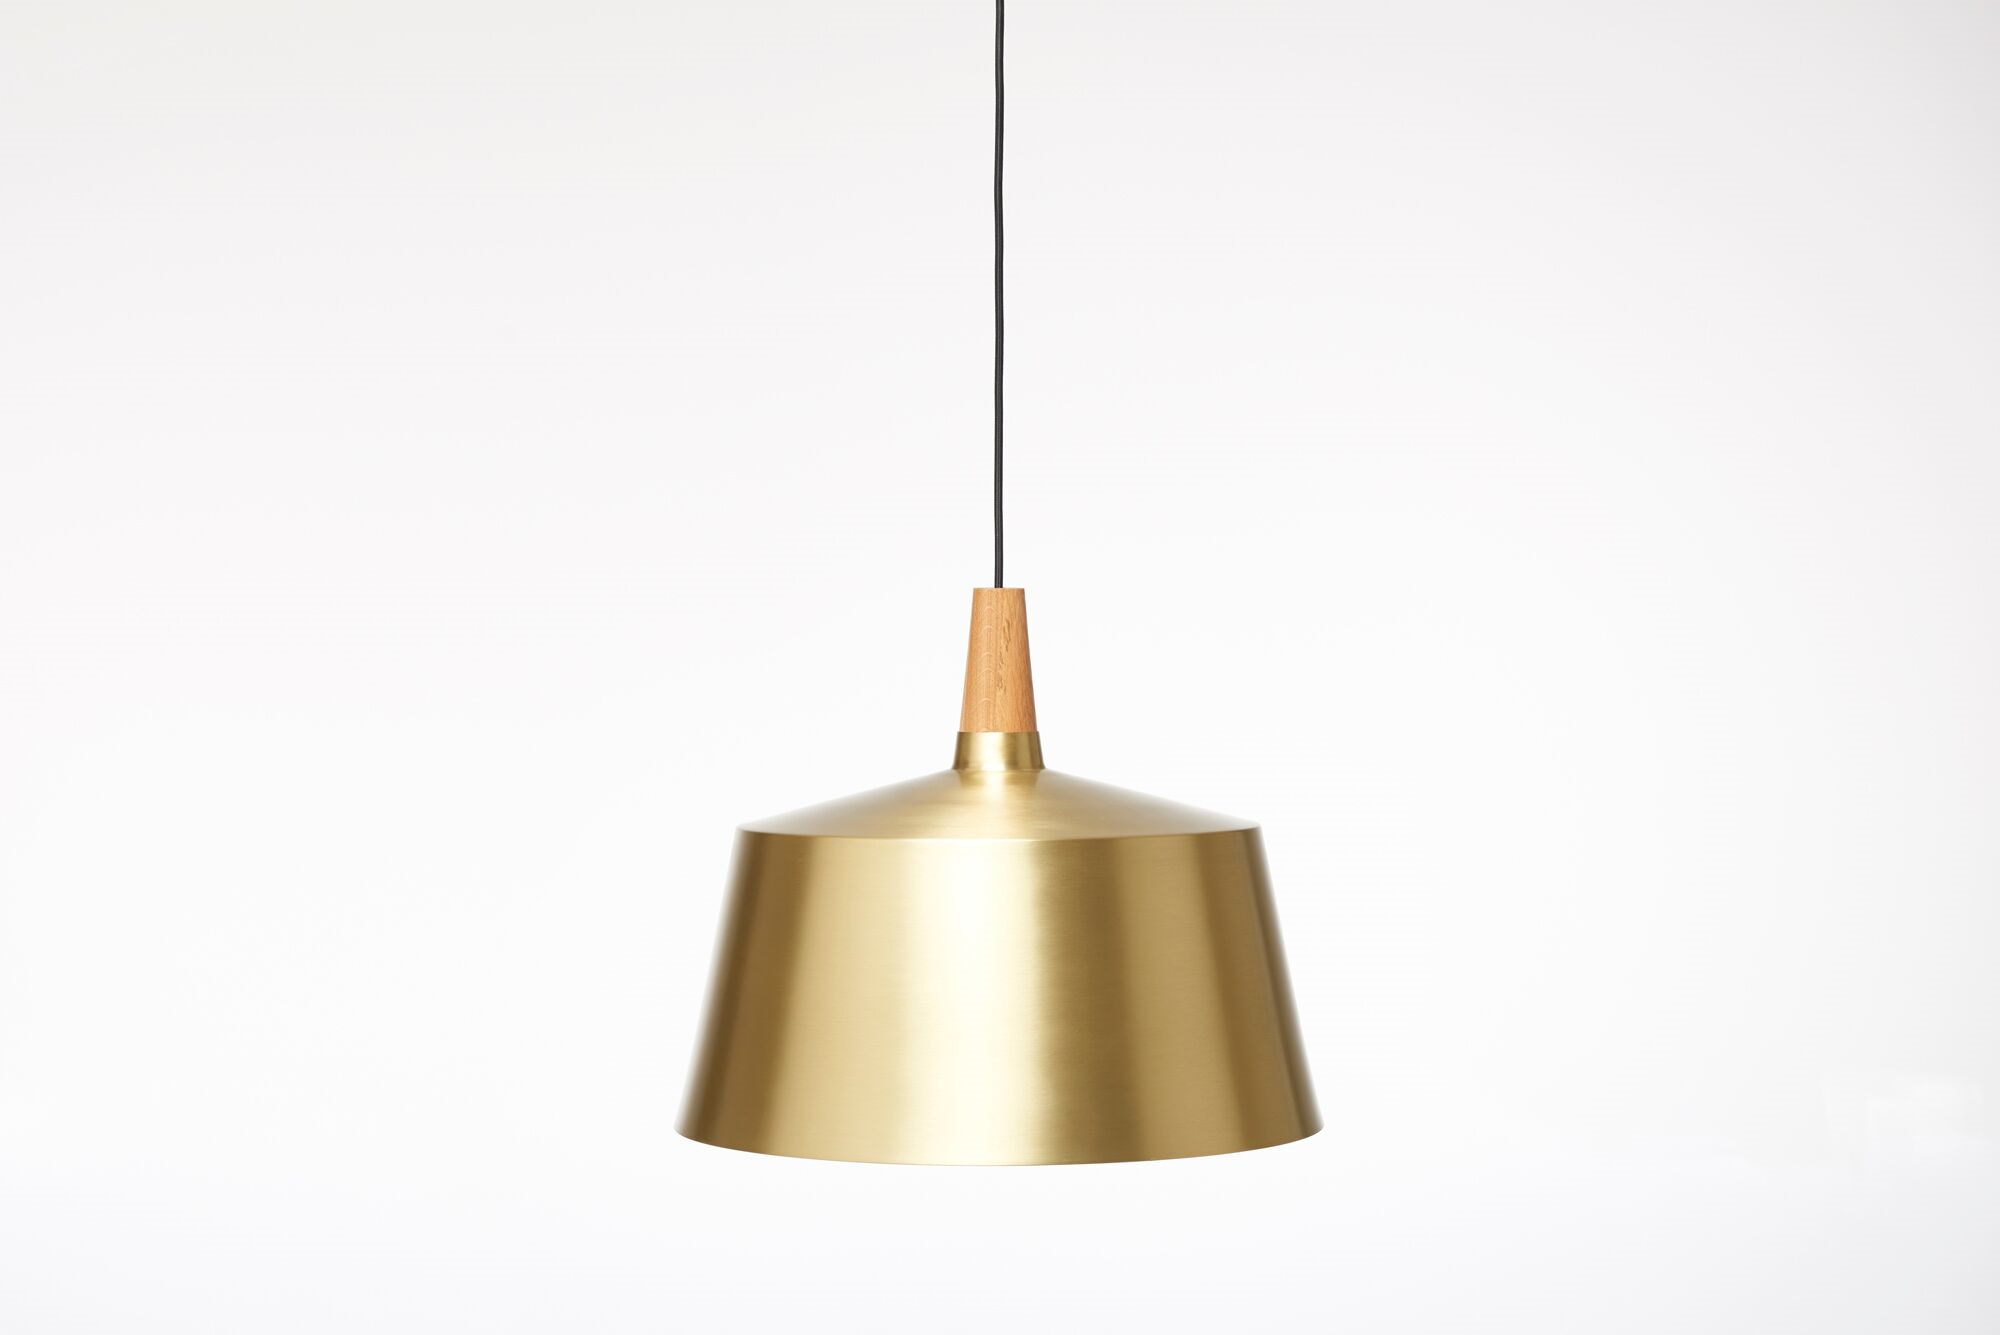 Gallery Of Morse Pendant By Apparentt Local Australian Furniture & Lighting Design Richmond, Melbourne Image 2